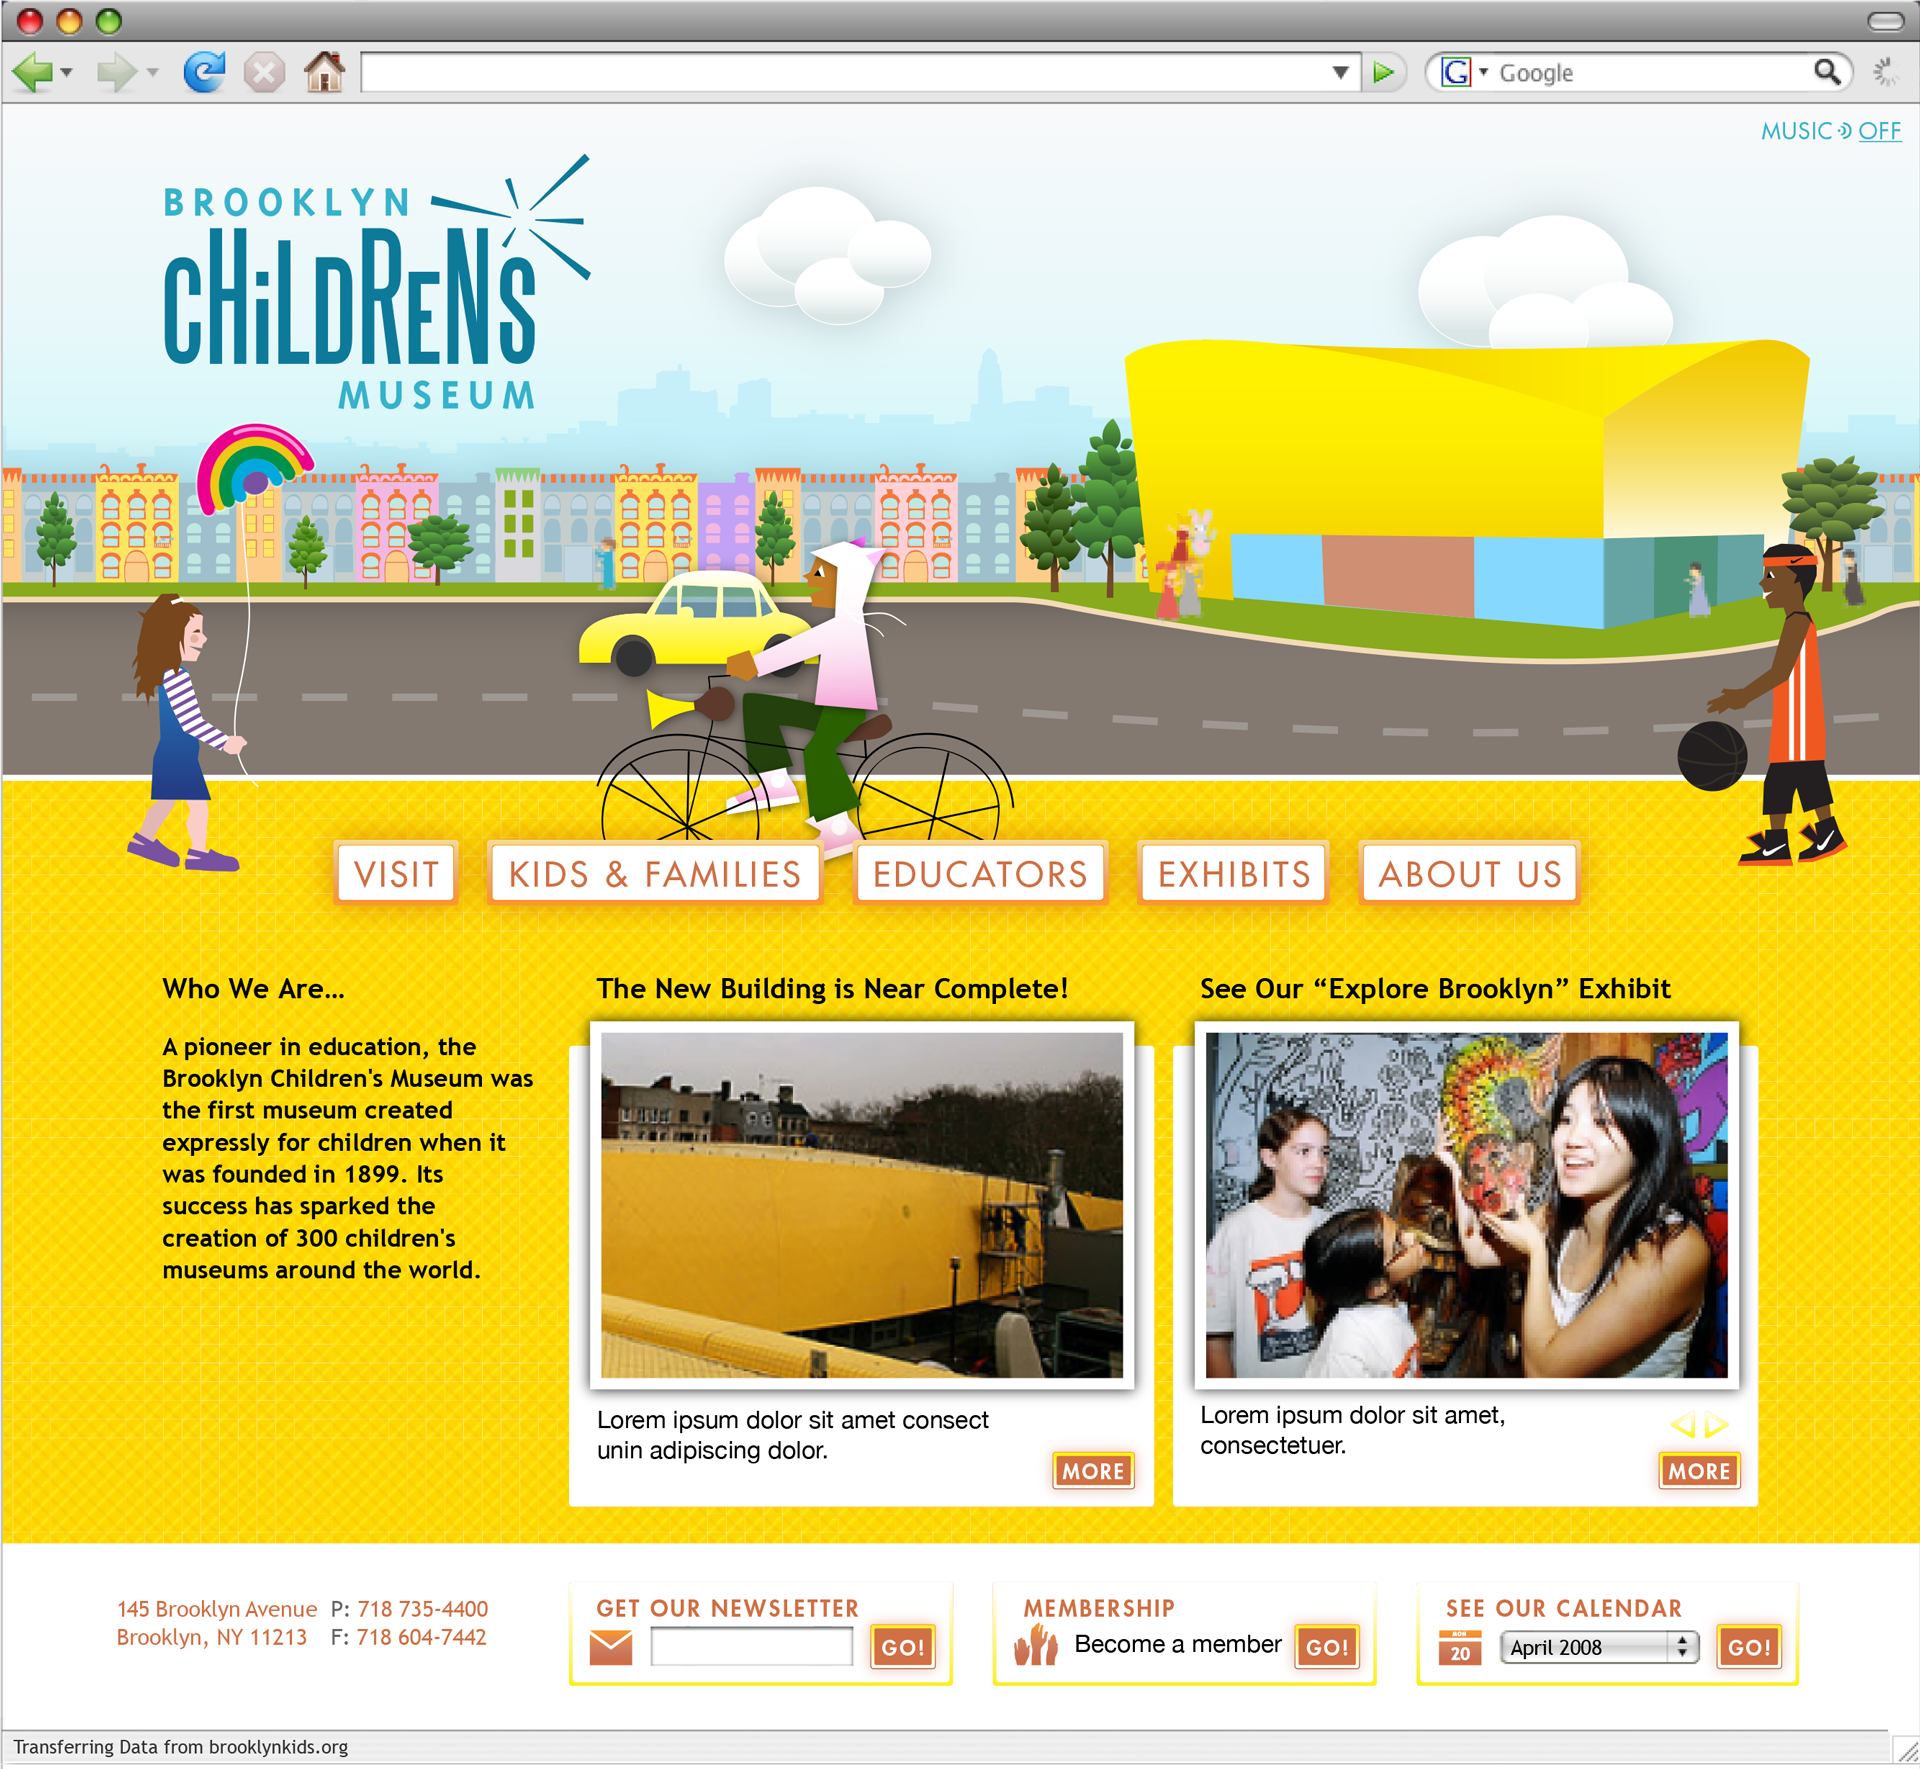 The landing page for Brooklyn Children's Museum animated various children and vehicles passing by. In the distance the foot traffic would enter and leave the museum.